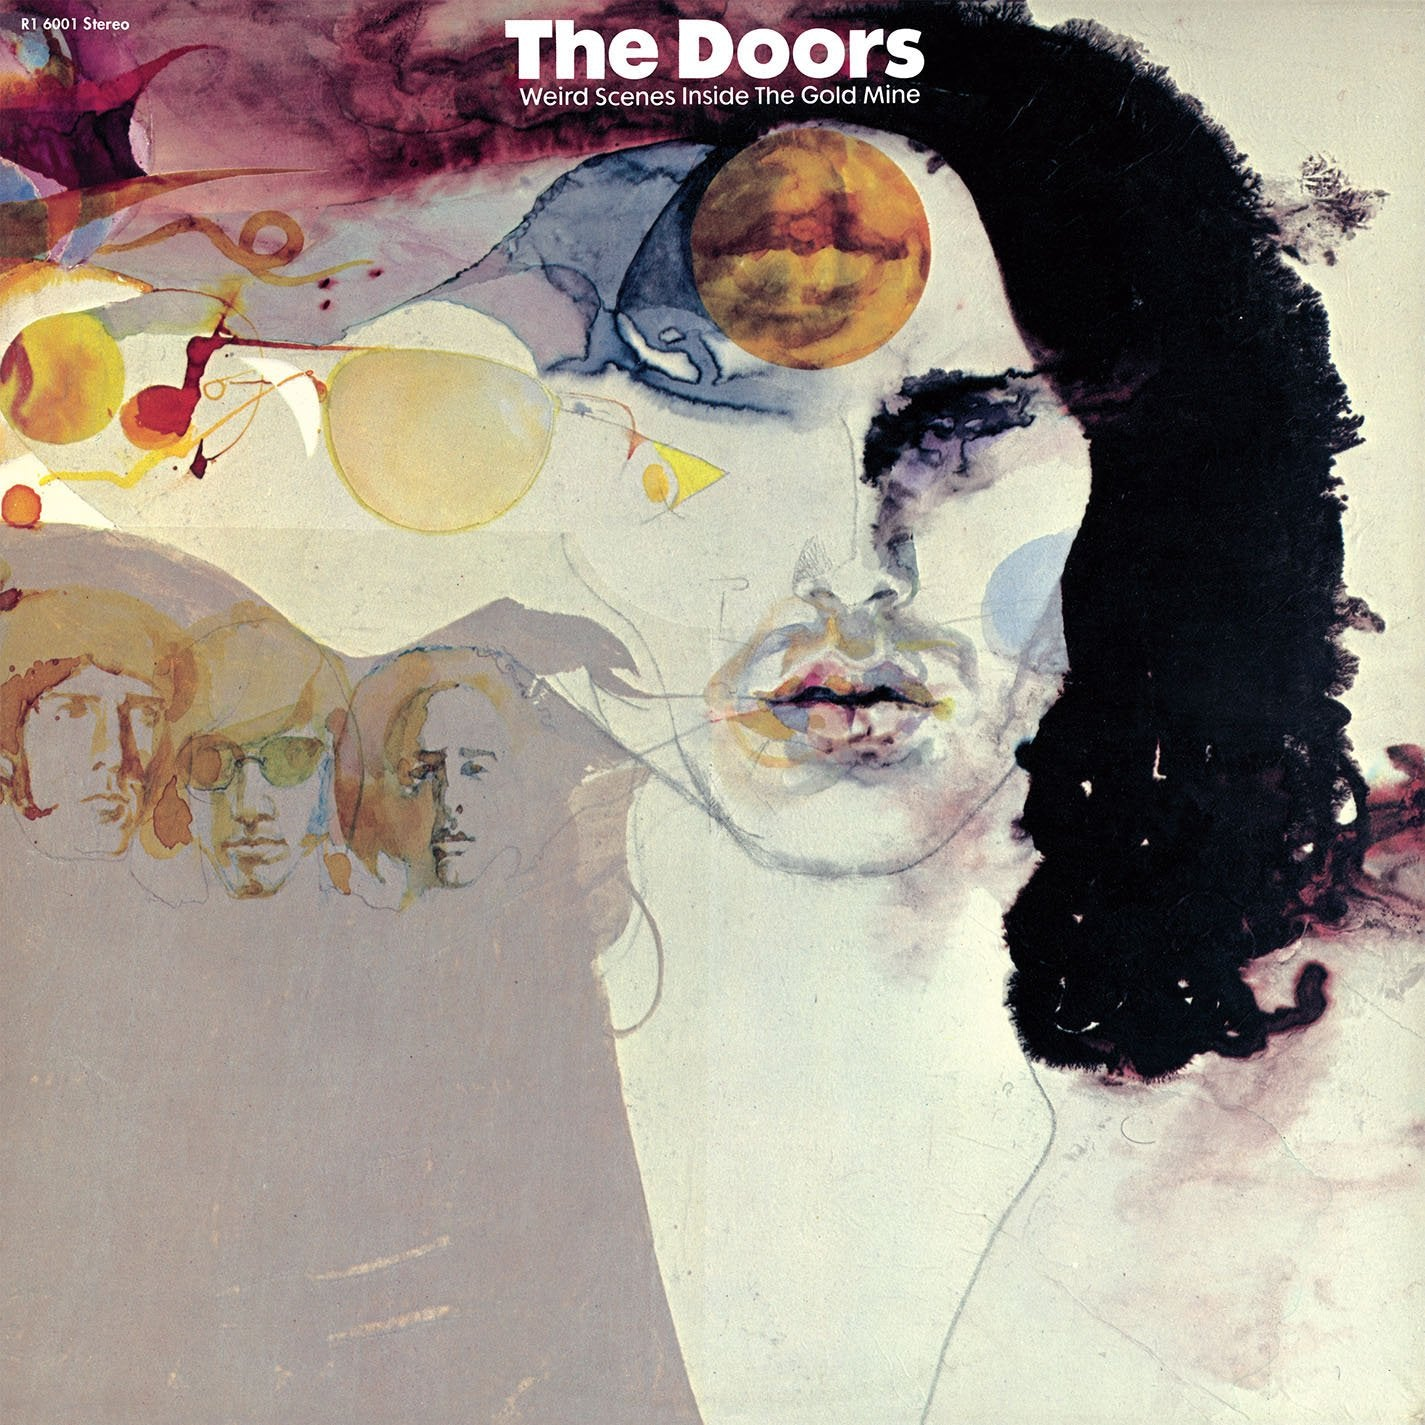 The Doors - Weird Scenes Inside the Gold Mine - Gears For Ears